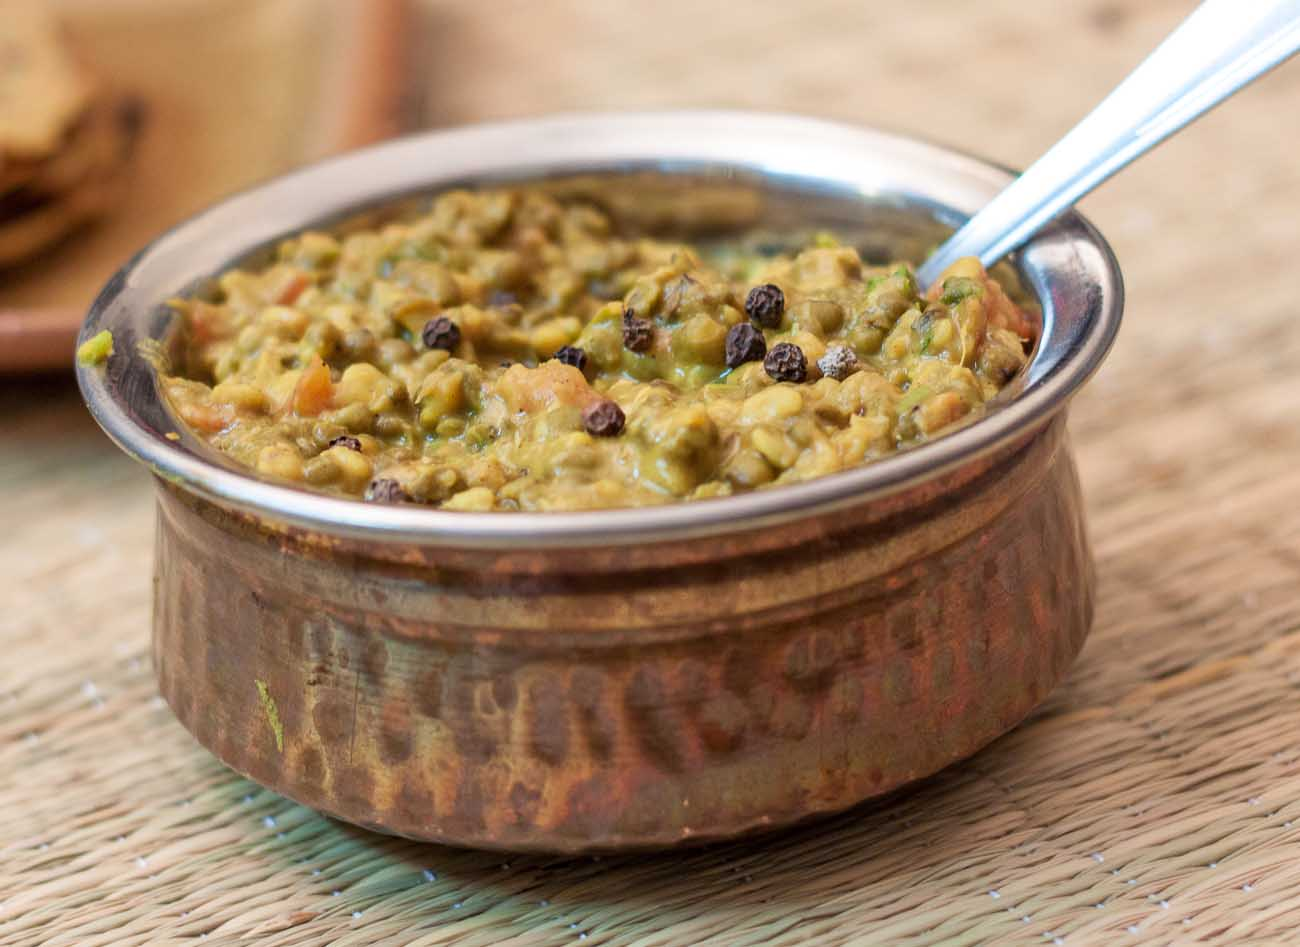 Green moong dal makhani recipe by archanas kitchen green moong dal makhani is a wholesome dal that is made just like dhaba dal of punjab made with green moong serve this dal with missi roti and lauki raita forumfinder Image collections